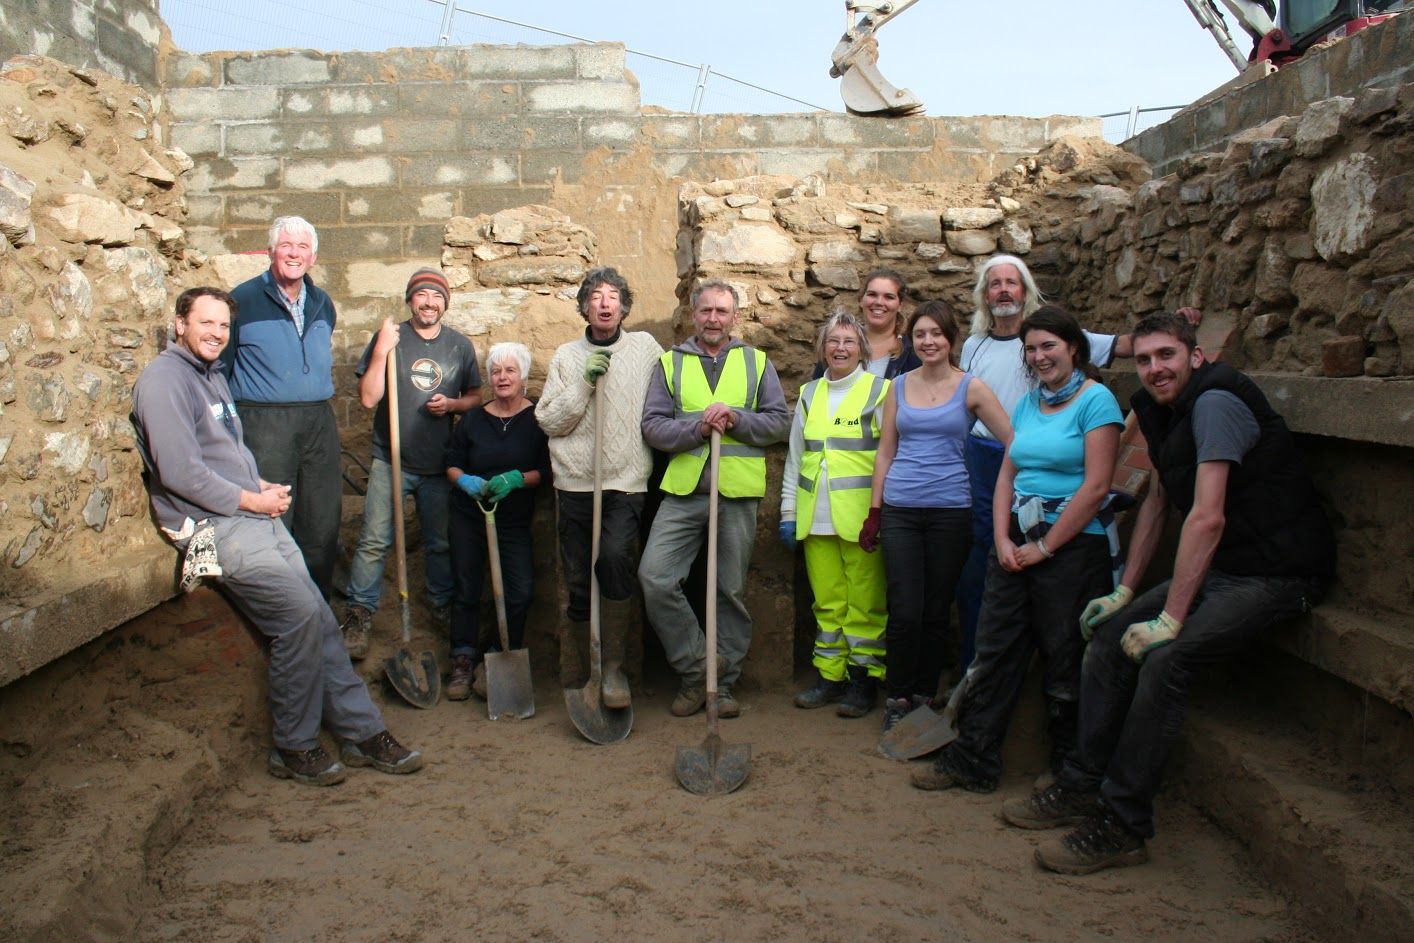 Team near completion. Image: Image: Cornwall Archaeological Unit